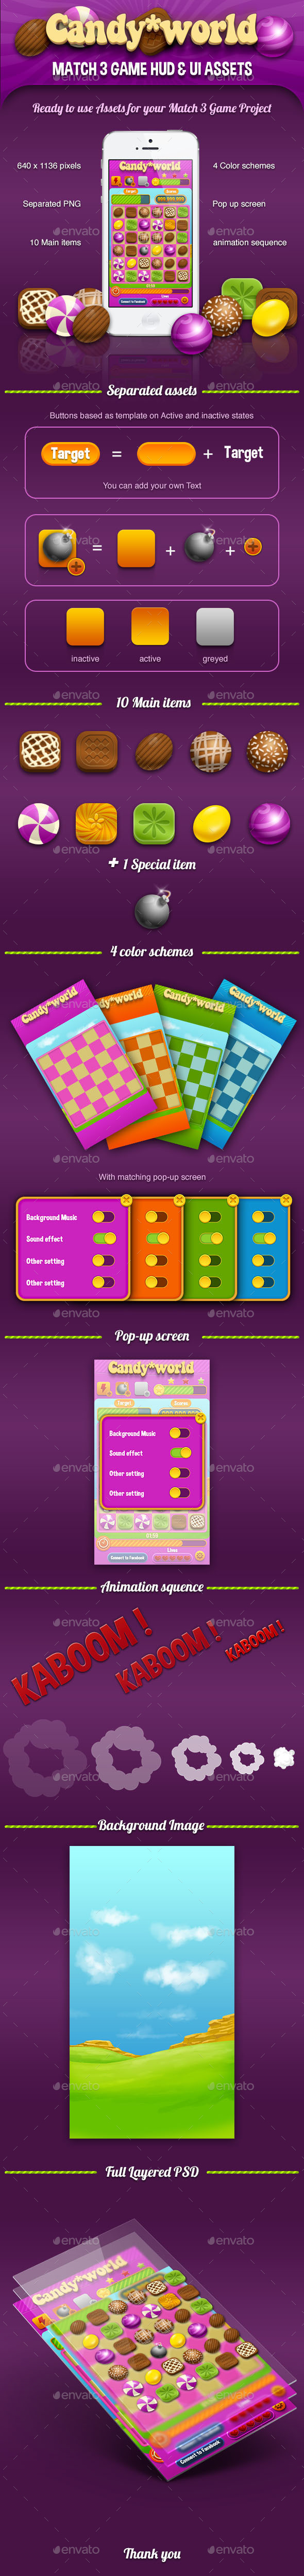 Candy World - Match 3 Game - Kits and GUI Assets - Game Kits Game Assets